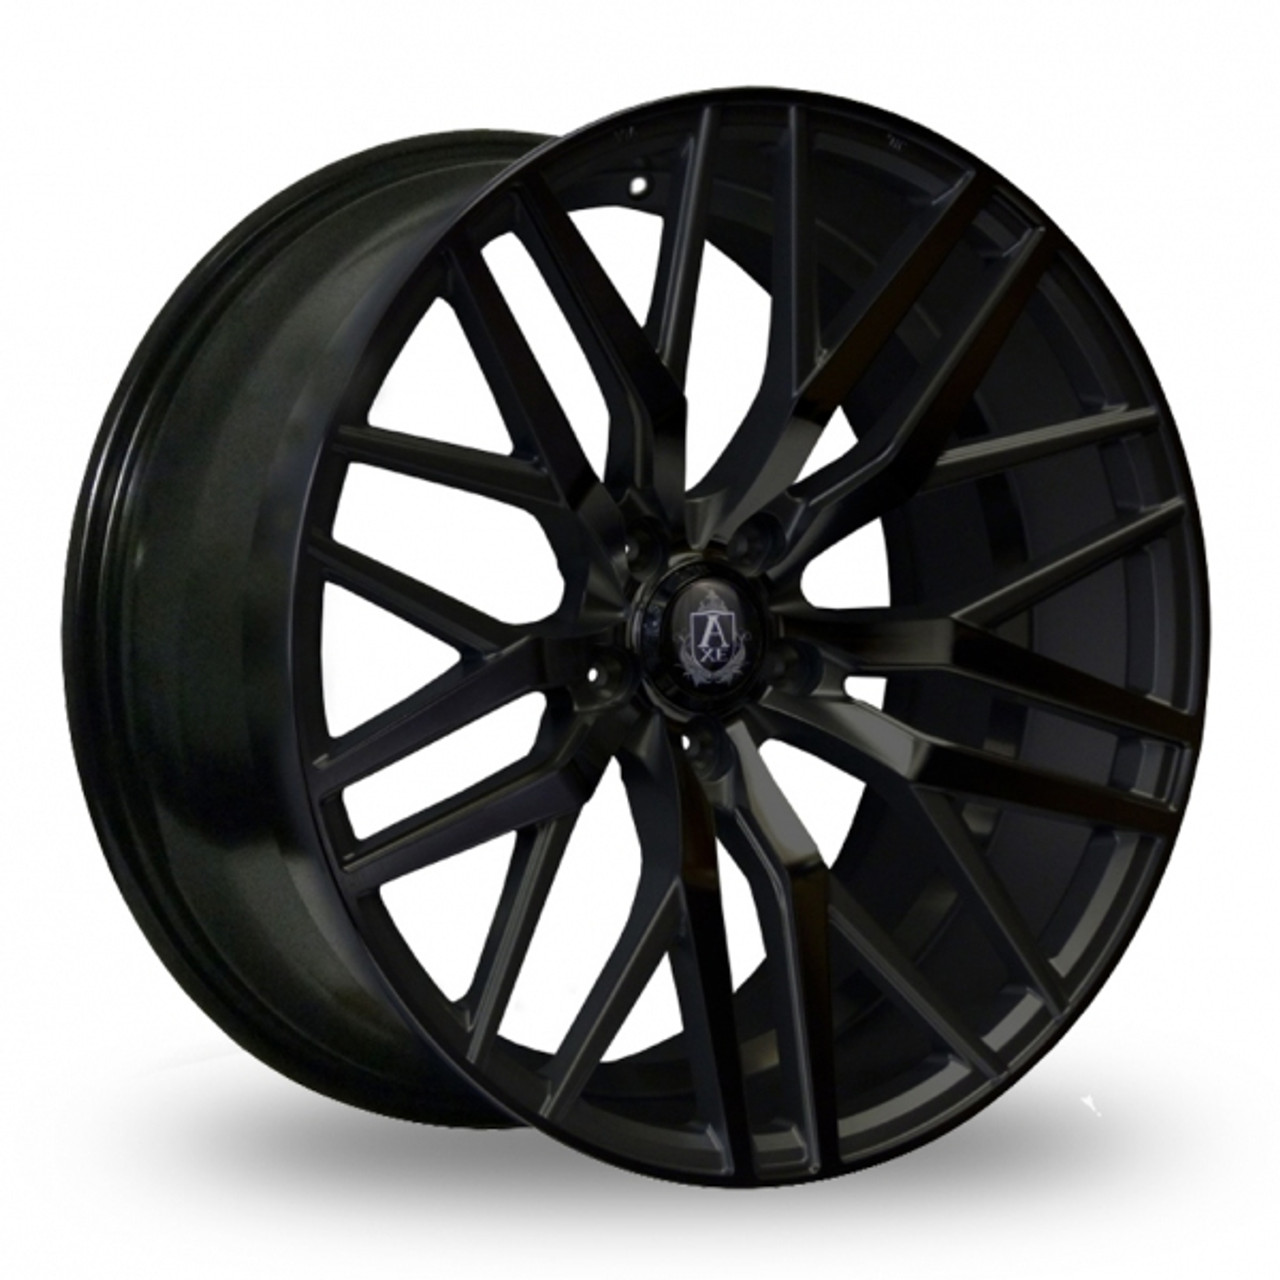 Axe EX30 Gloss Black Alloy Wheels